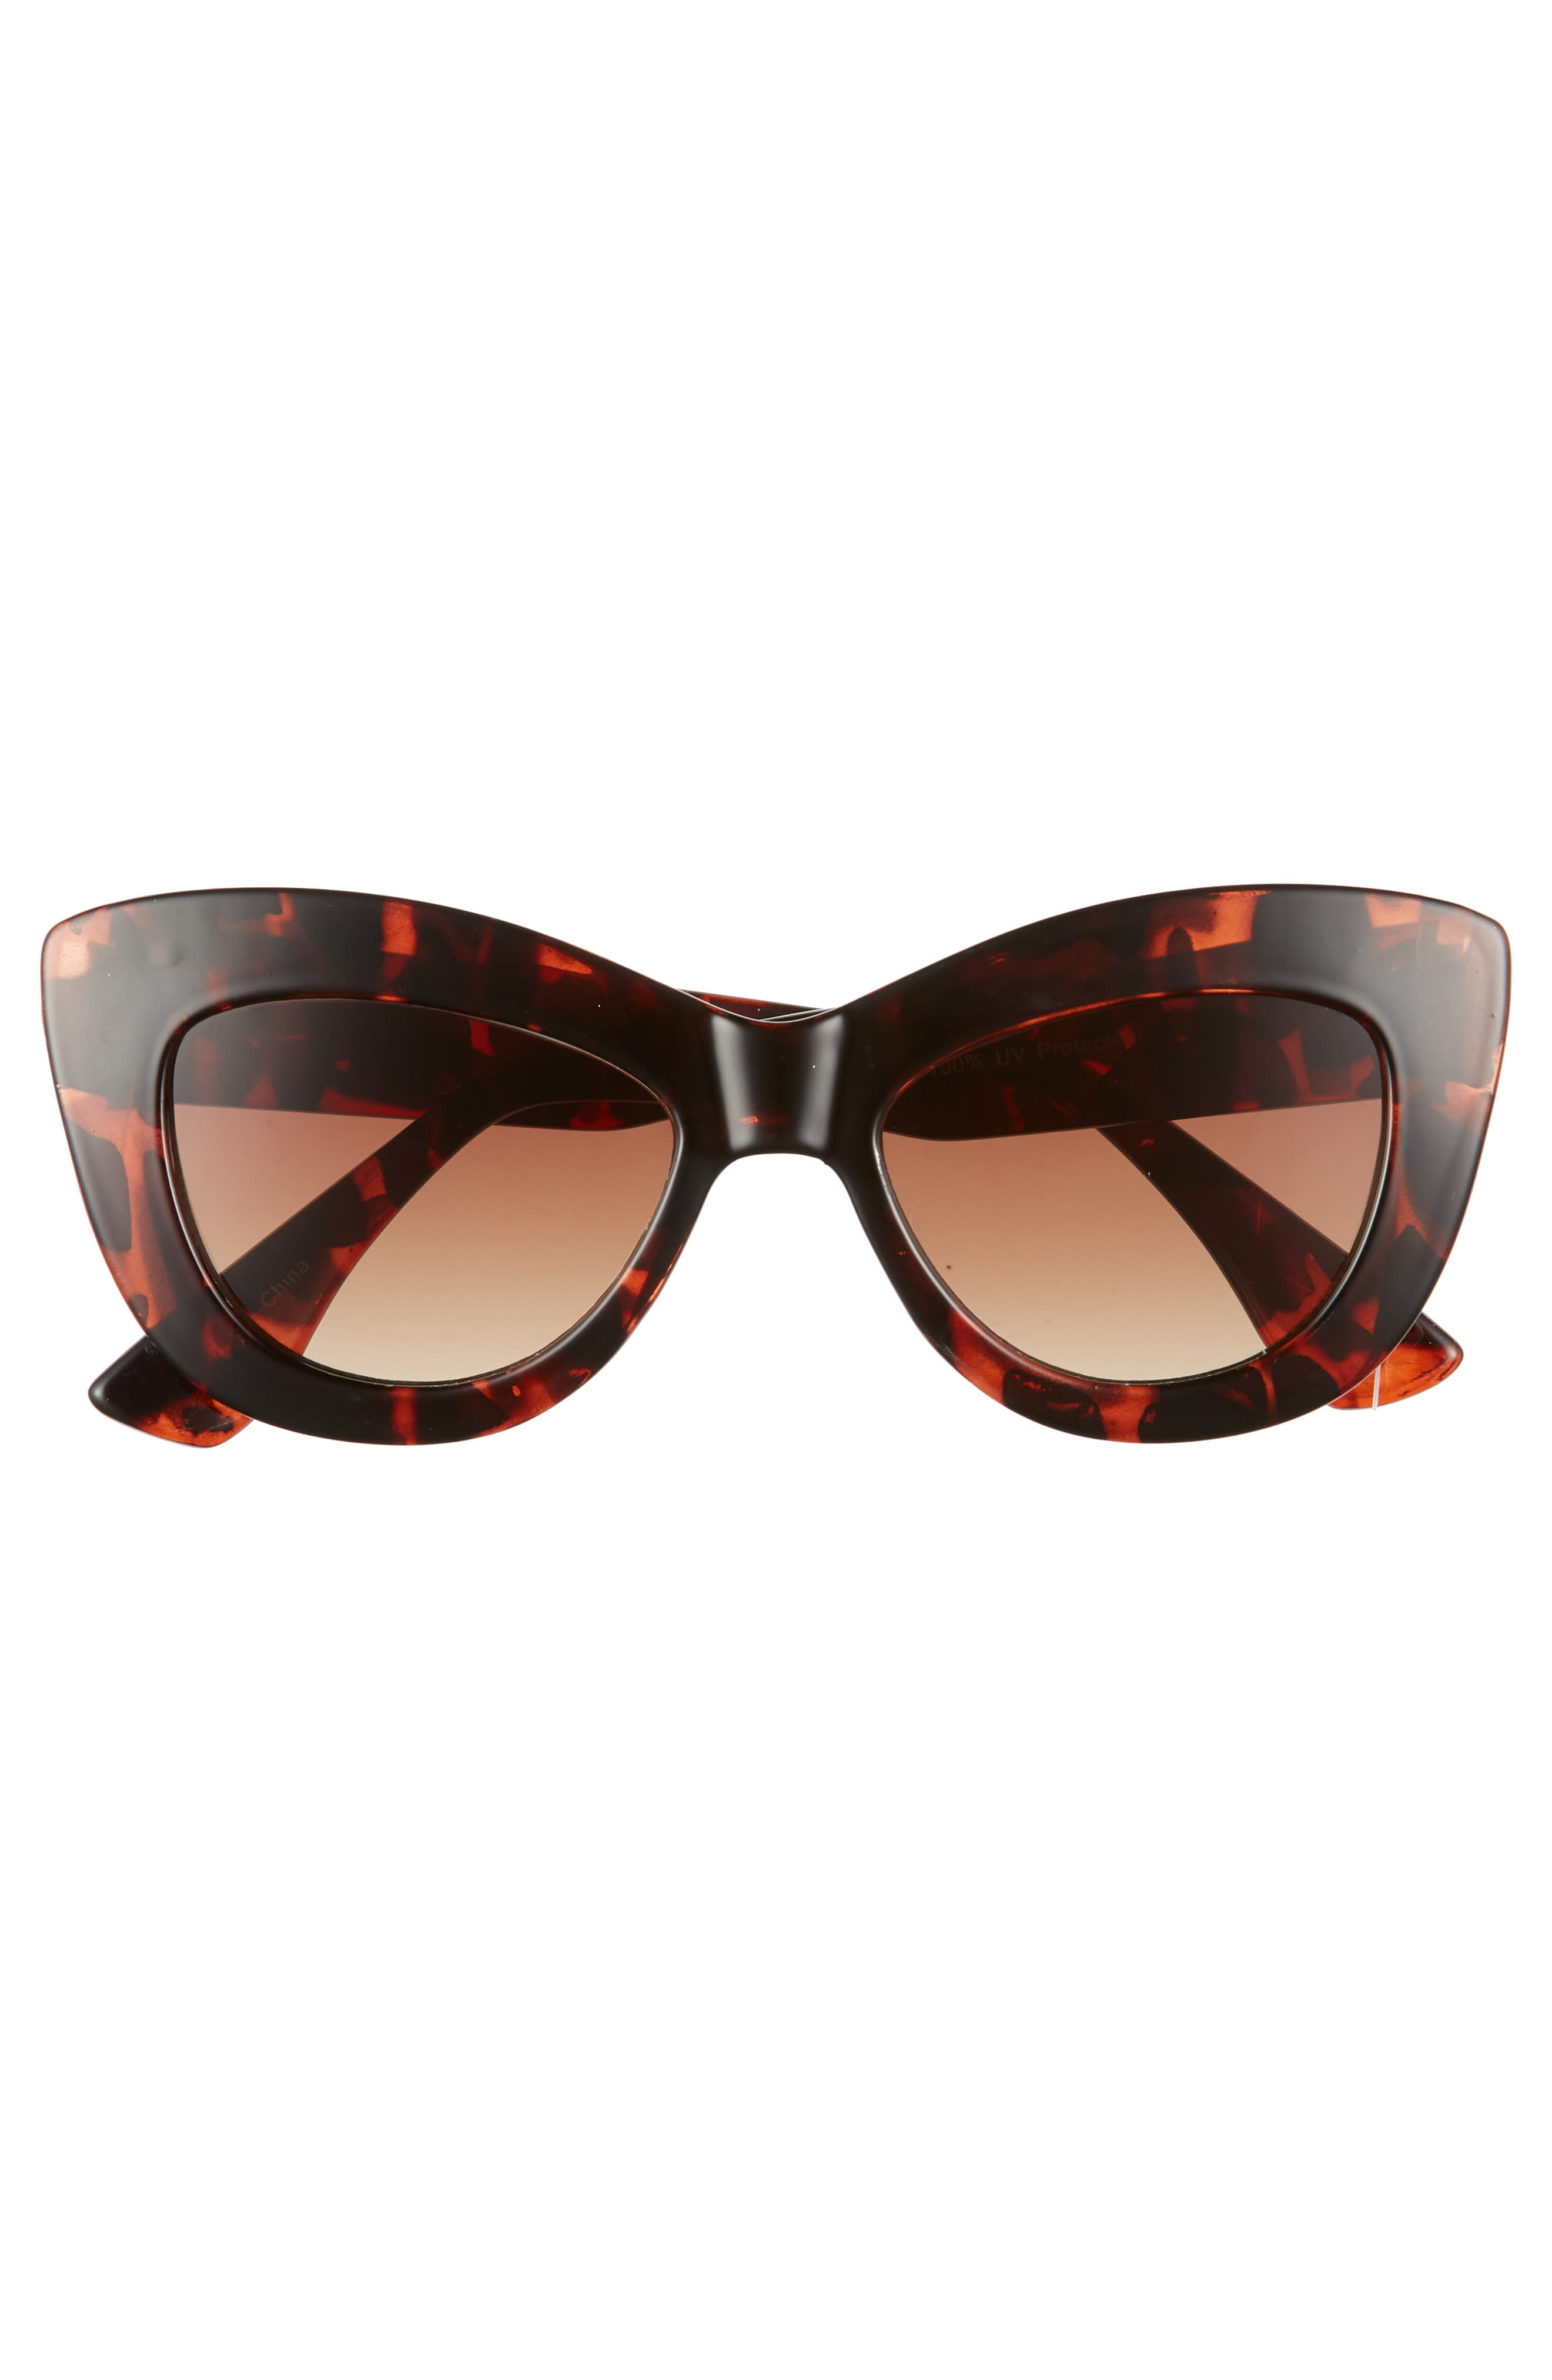 65mm Cat Eye Sunglasses,                             Alternate thumbnail 3, color,                             200